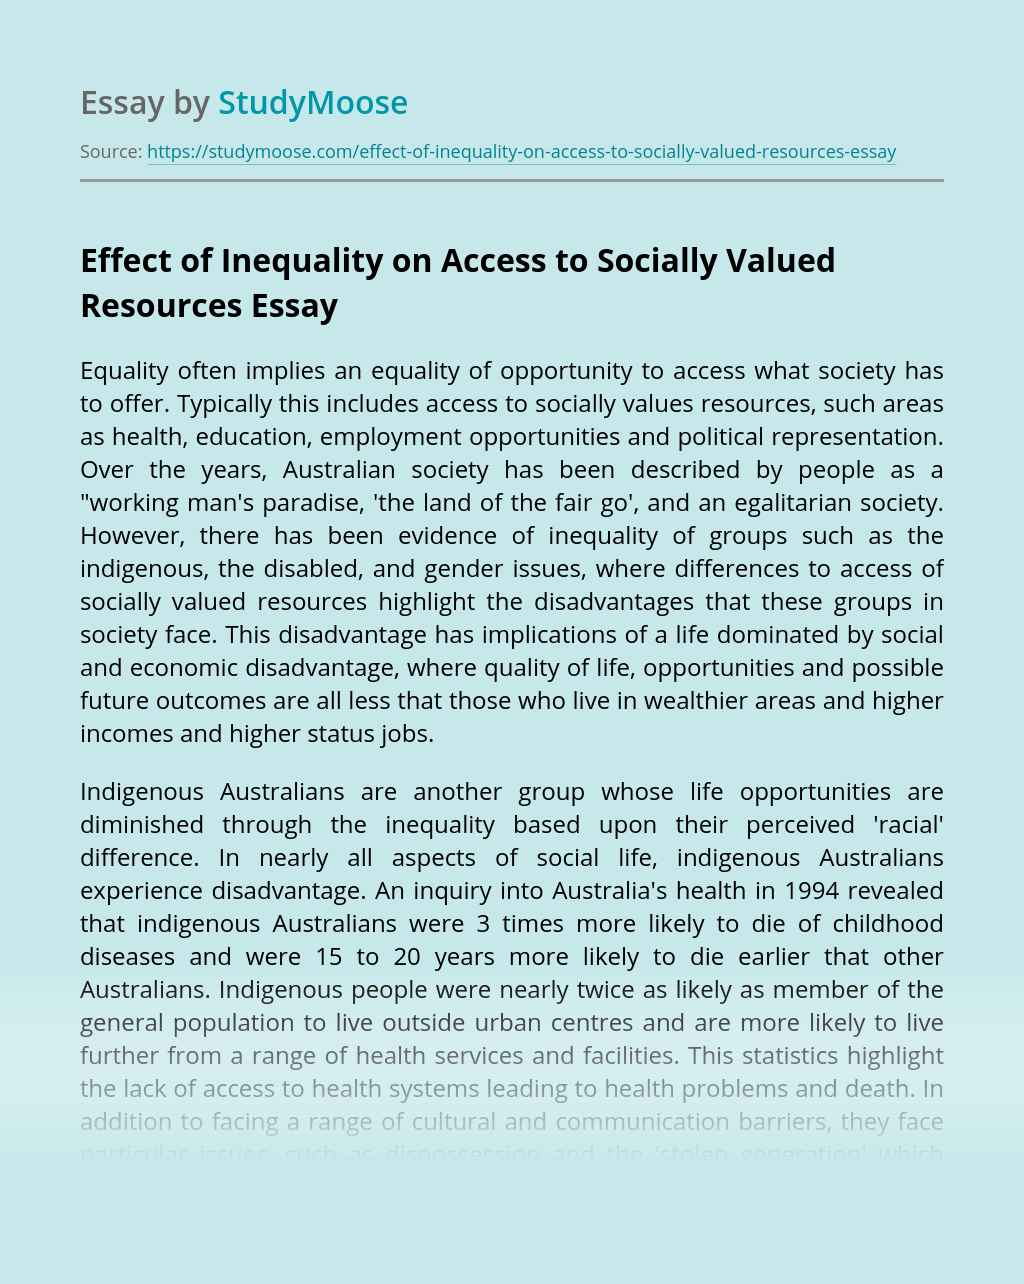 Effect of Inequality on Access to Socially Valued Resources